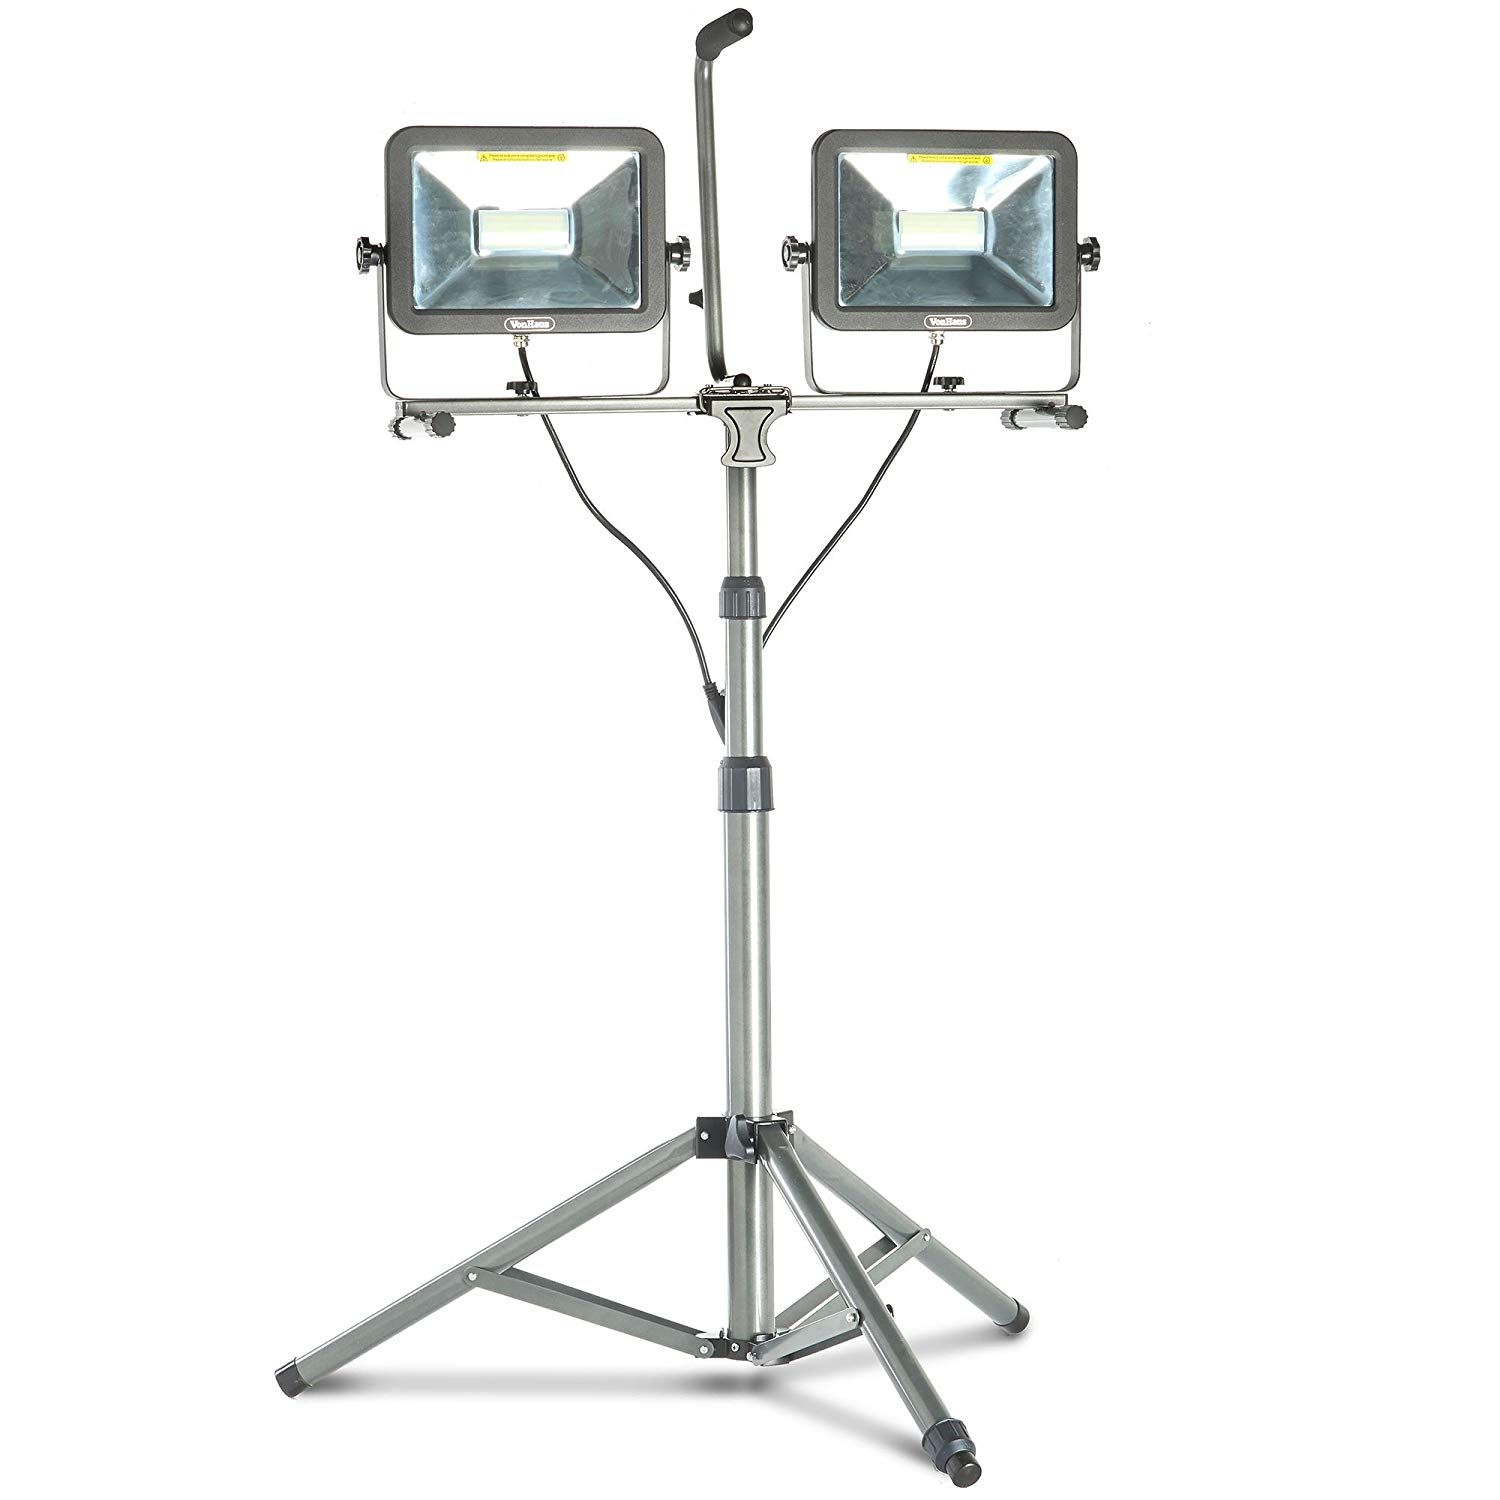 Vonhaus Two Head 10000 Lumen Led Work Light With Detachable Metal Lamp Housing Metal Telescopic Tripod Stand Rotating W With Images Led Work Light Work Lights Metal Lamp